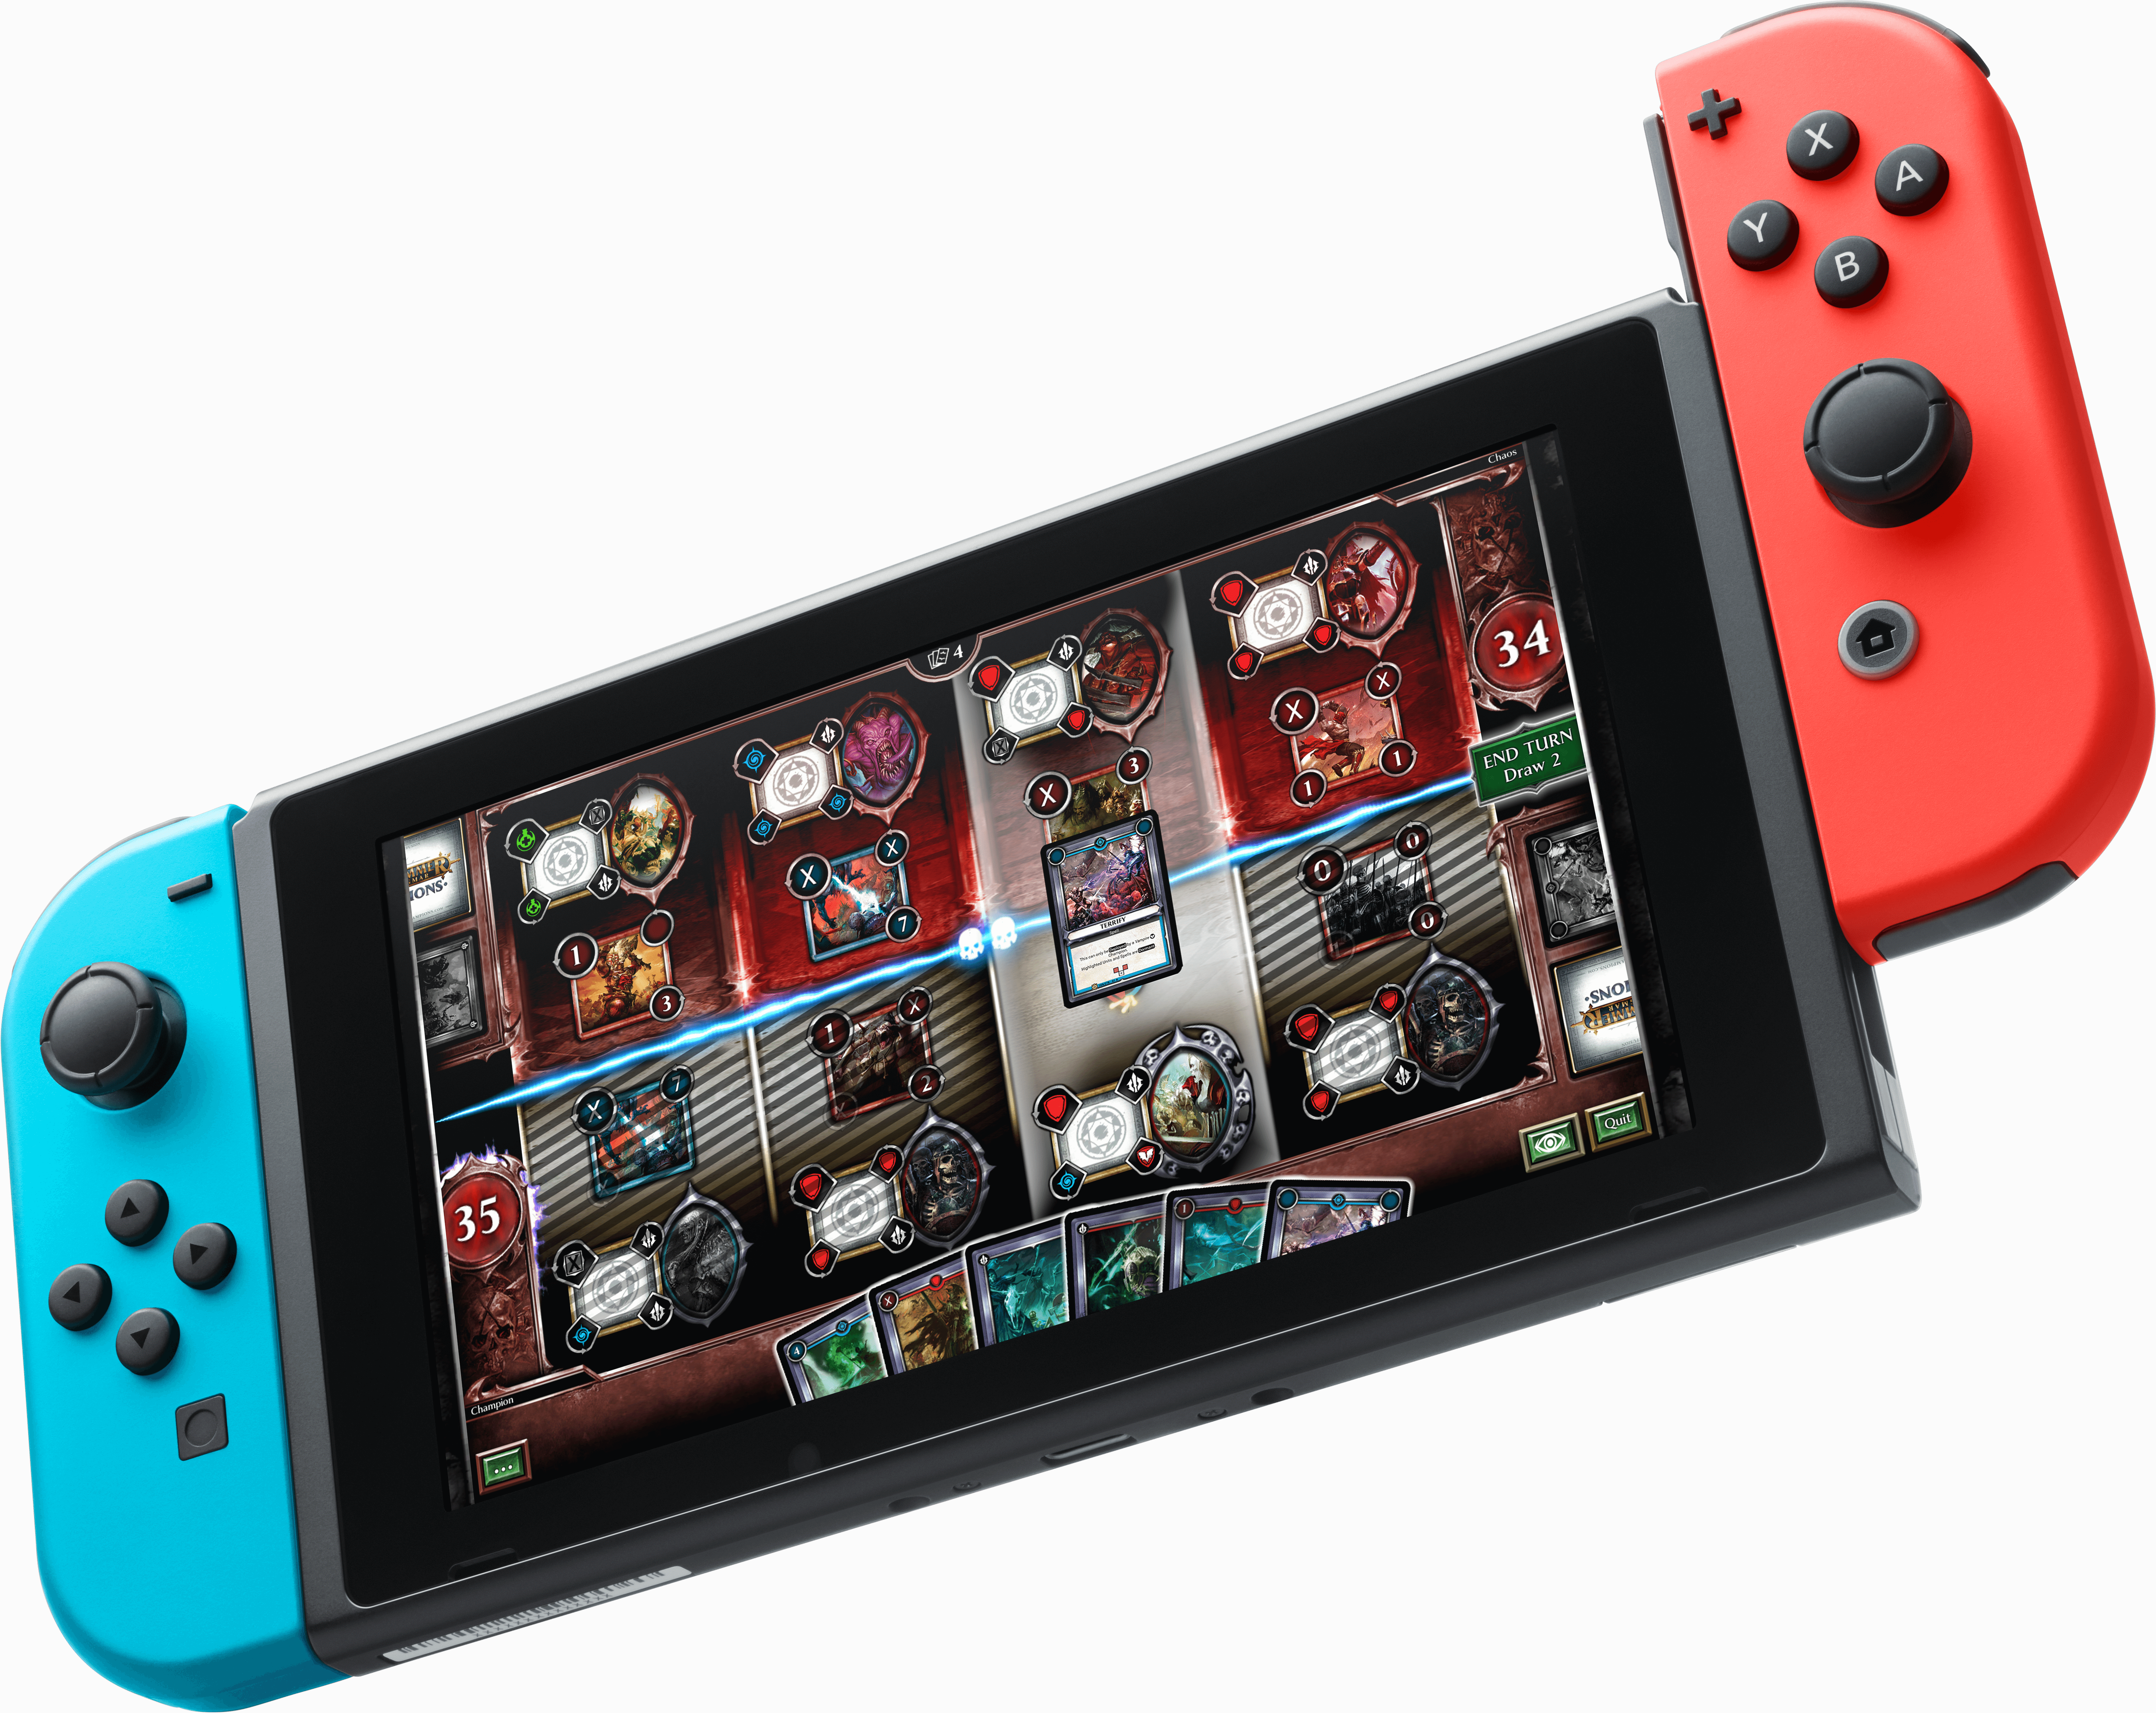 http://www.cosmocover.com/wp-content/uploads/2019/04/Nintendo-Switch-Screen-2.png